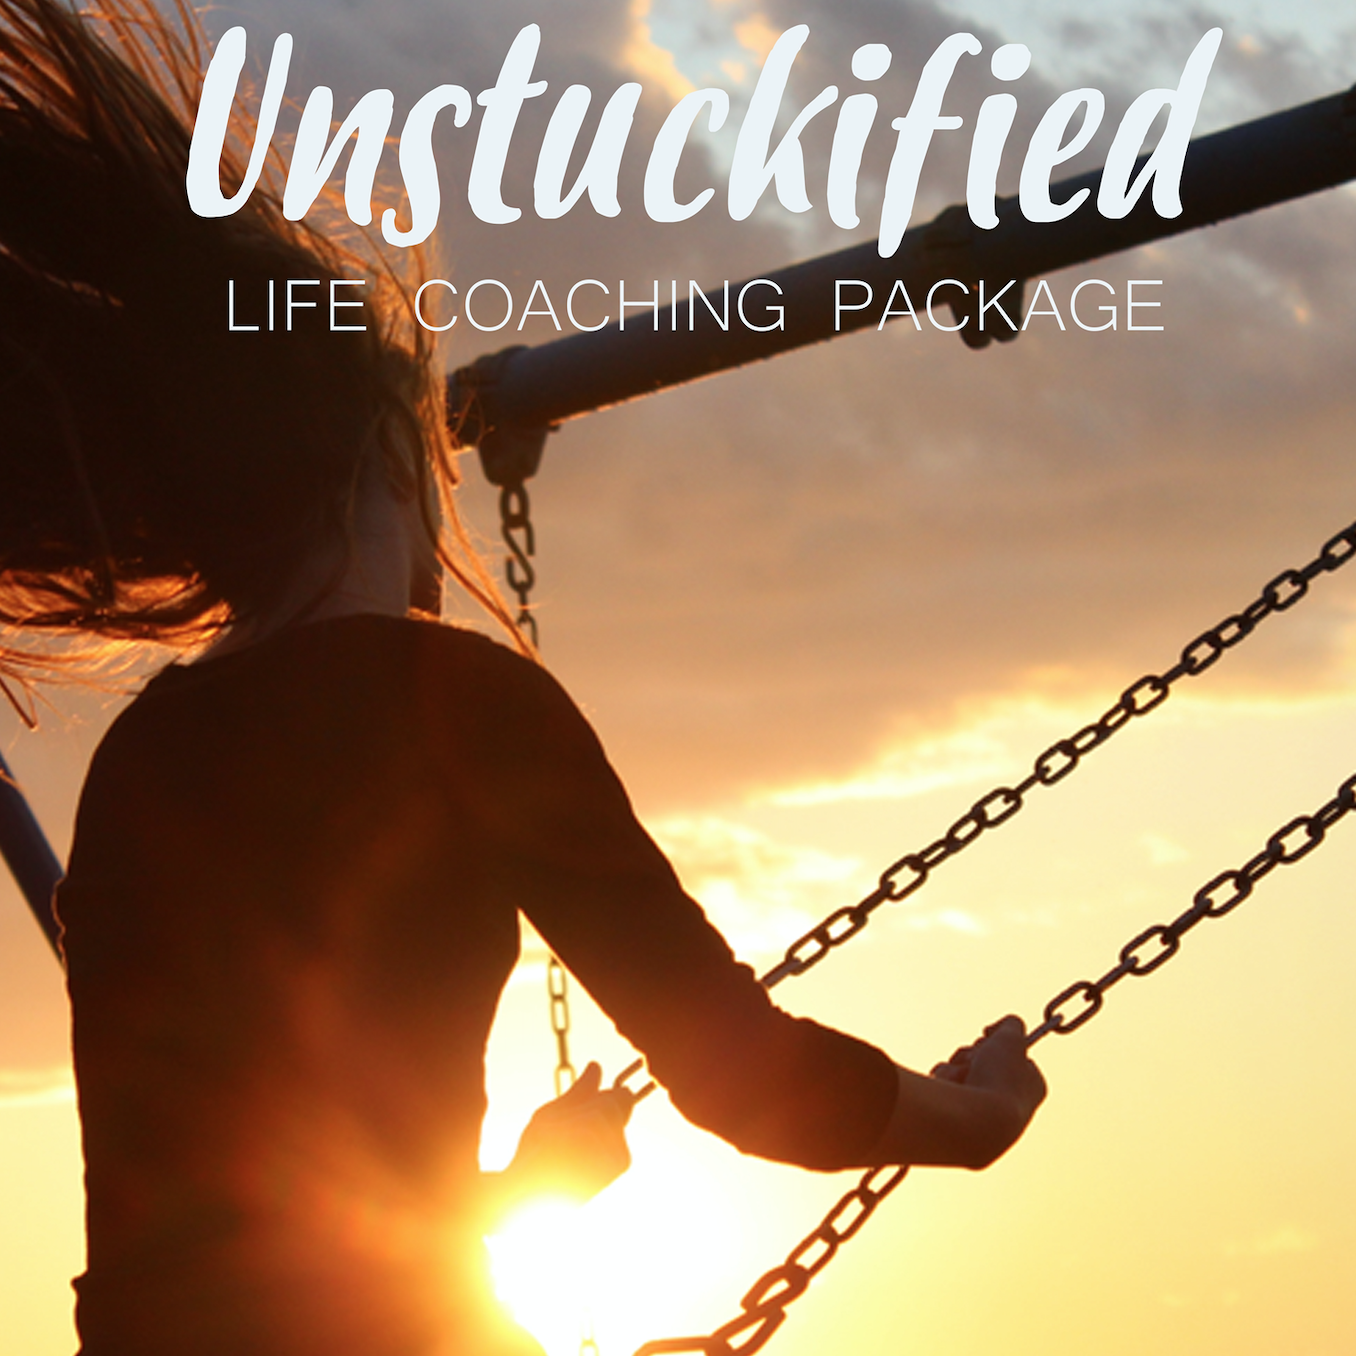 unstuckified life coaching package by shona macpherson